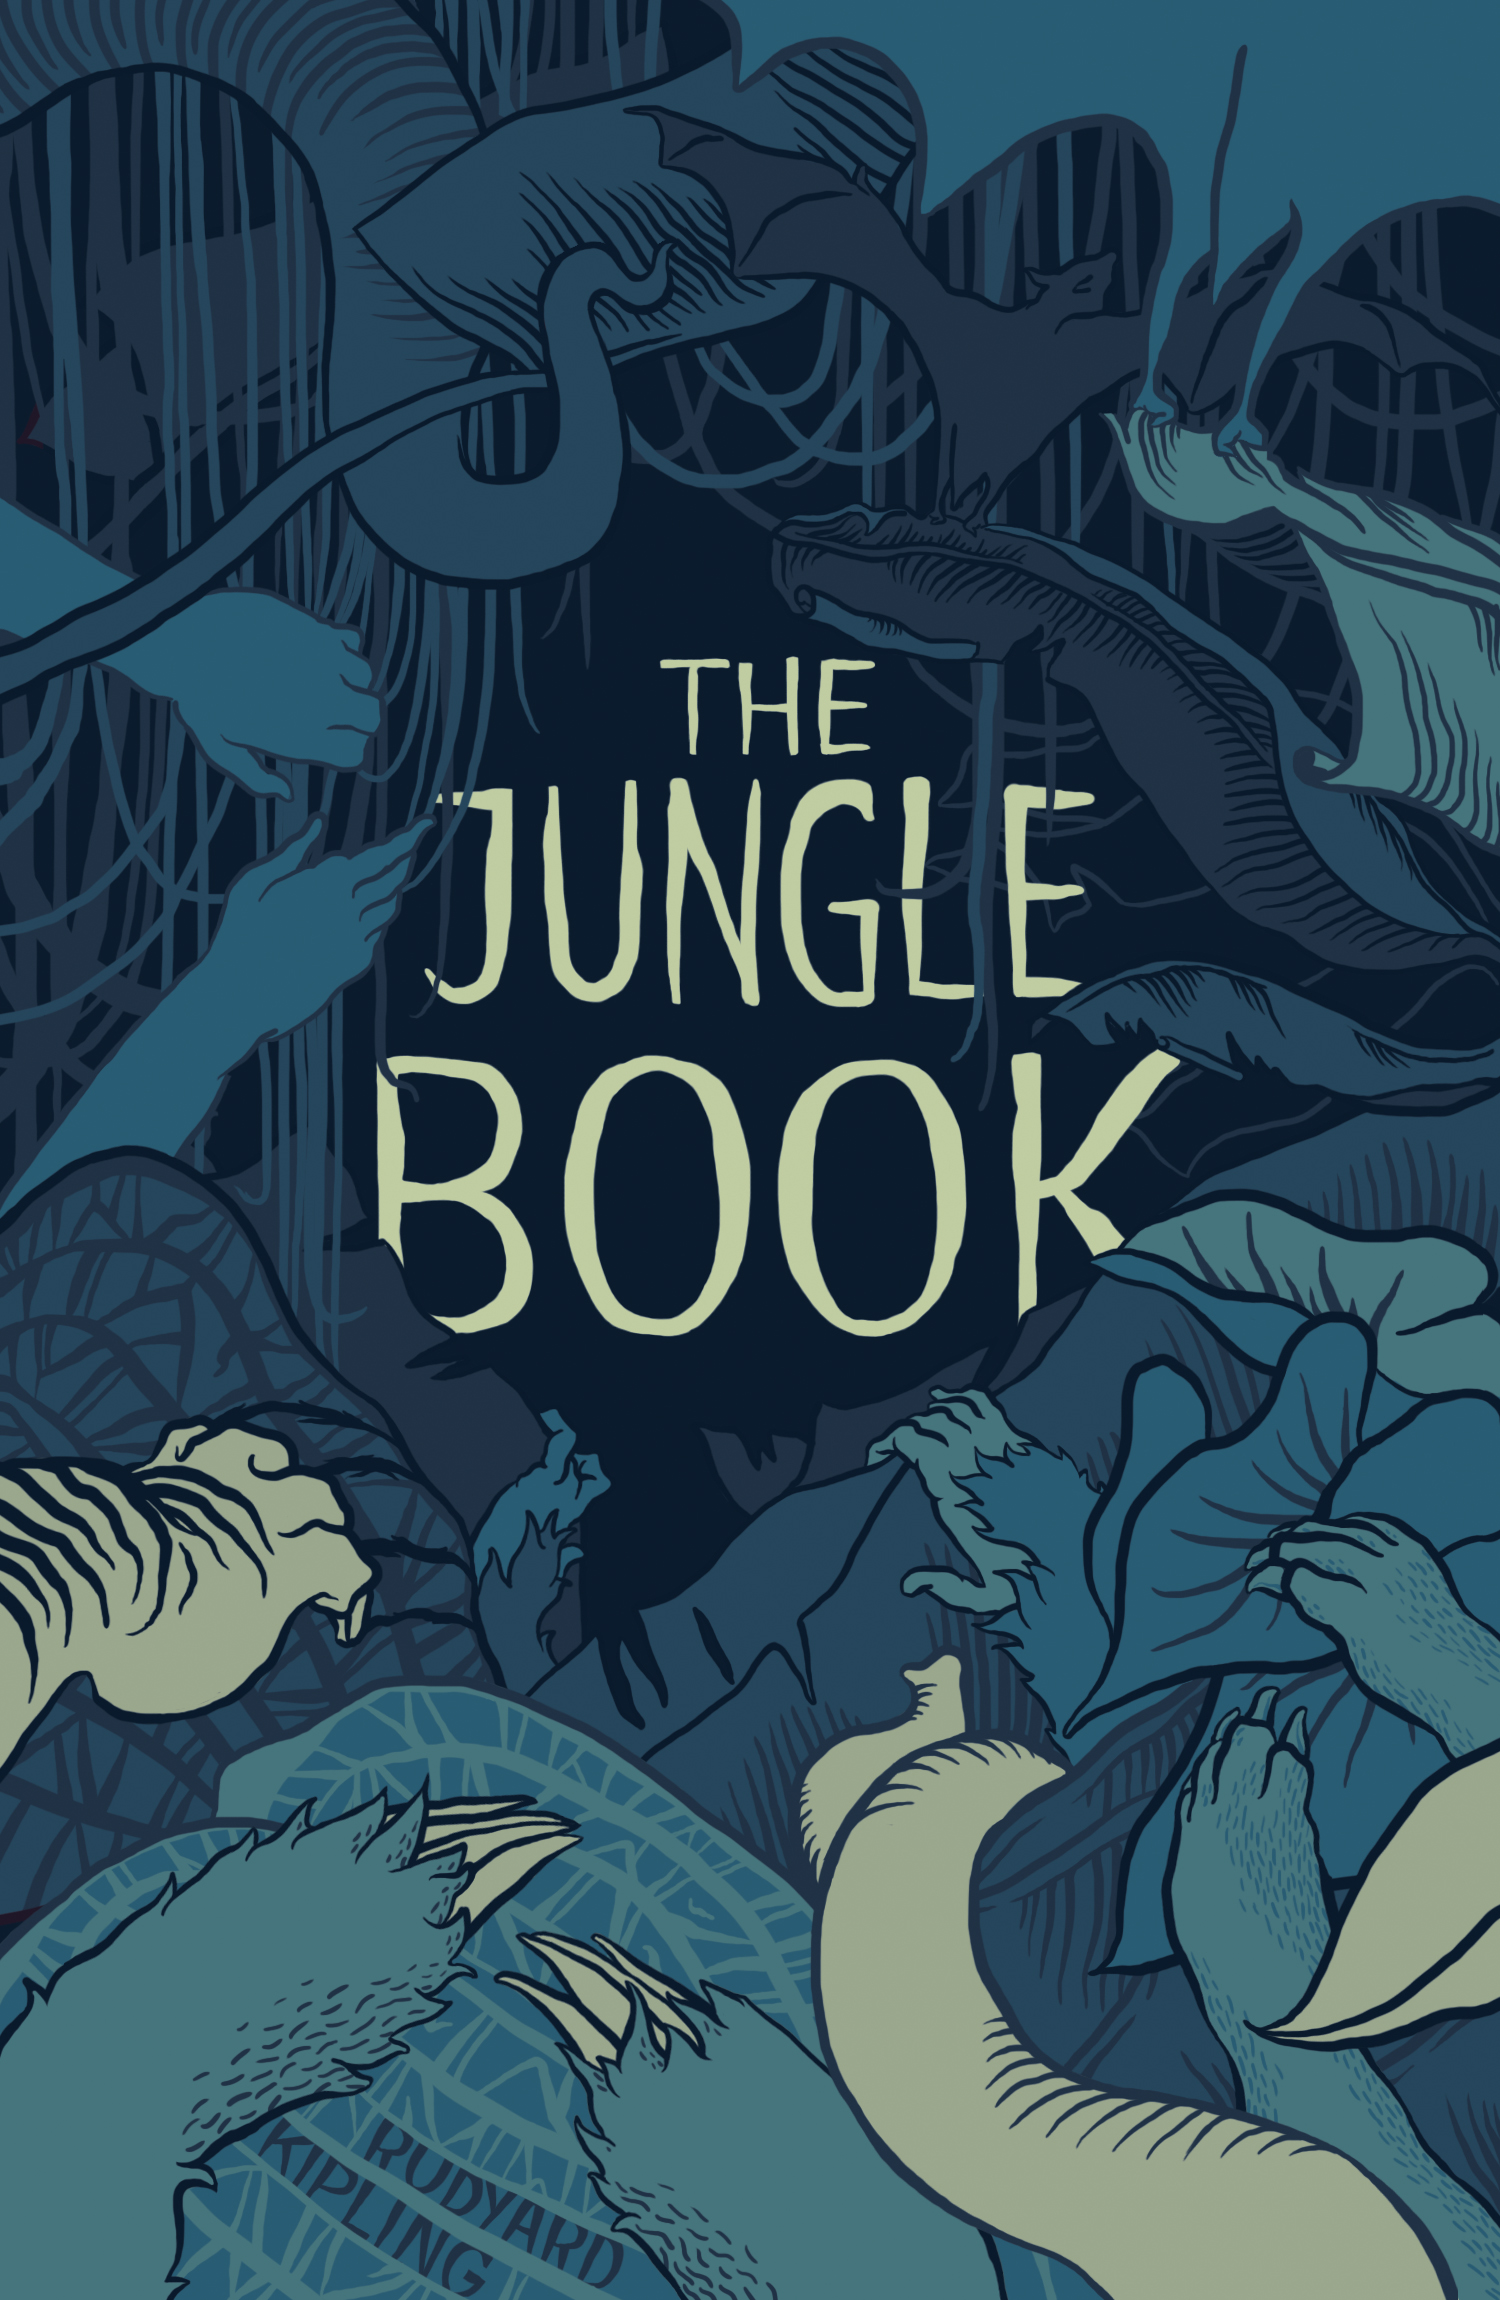 Book Cover Drawing Jobs : The jungle book graphic design pinterest